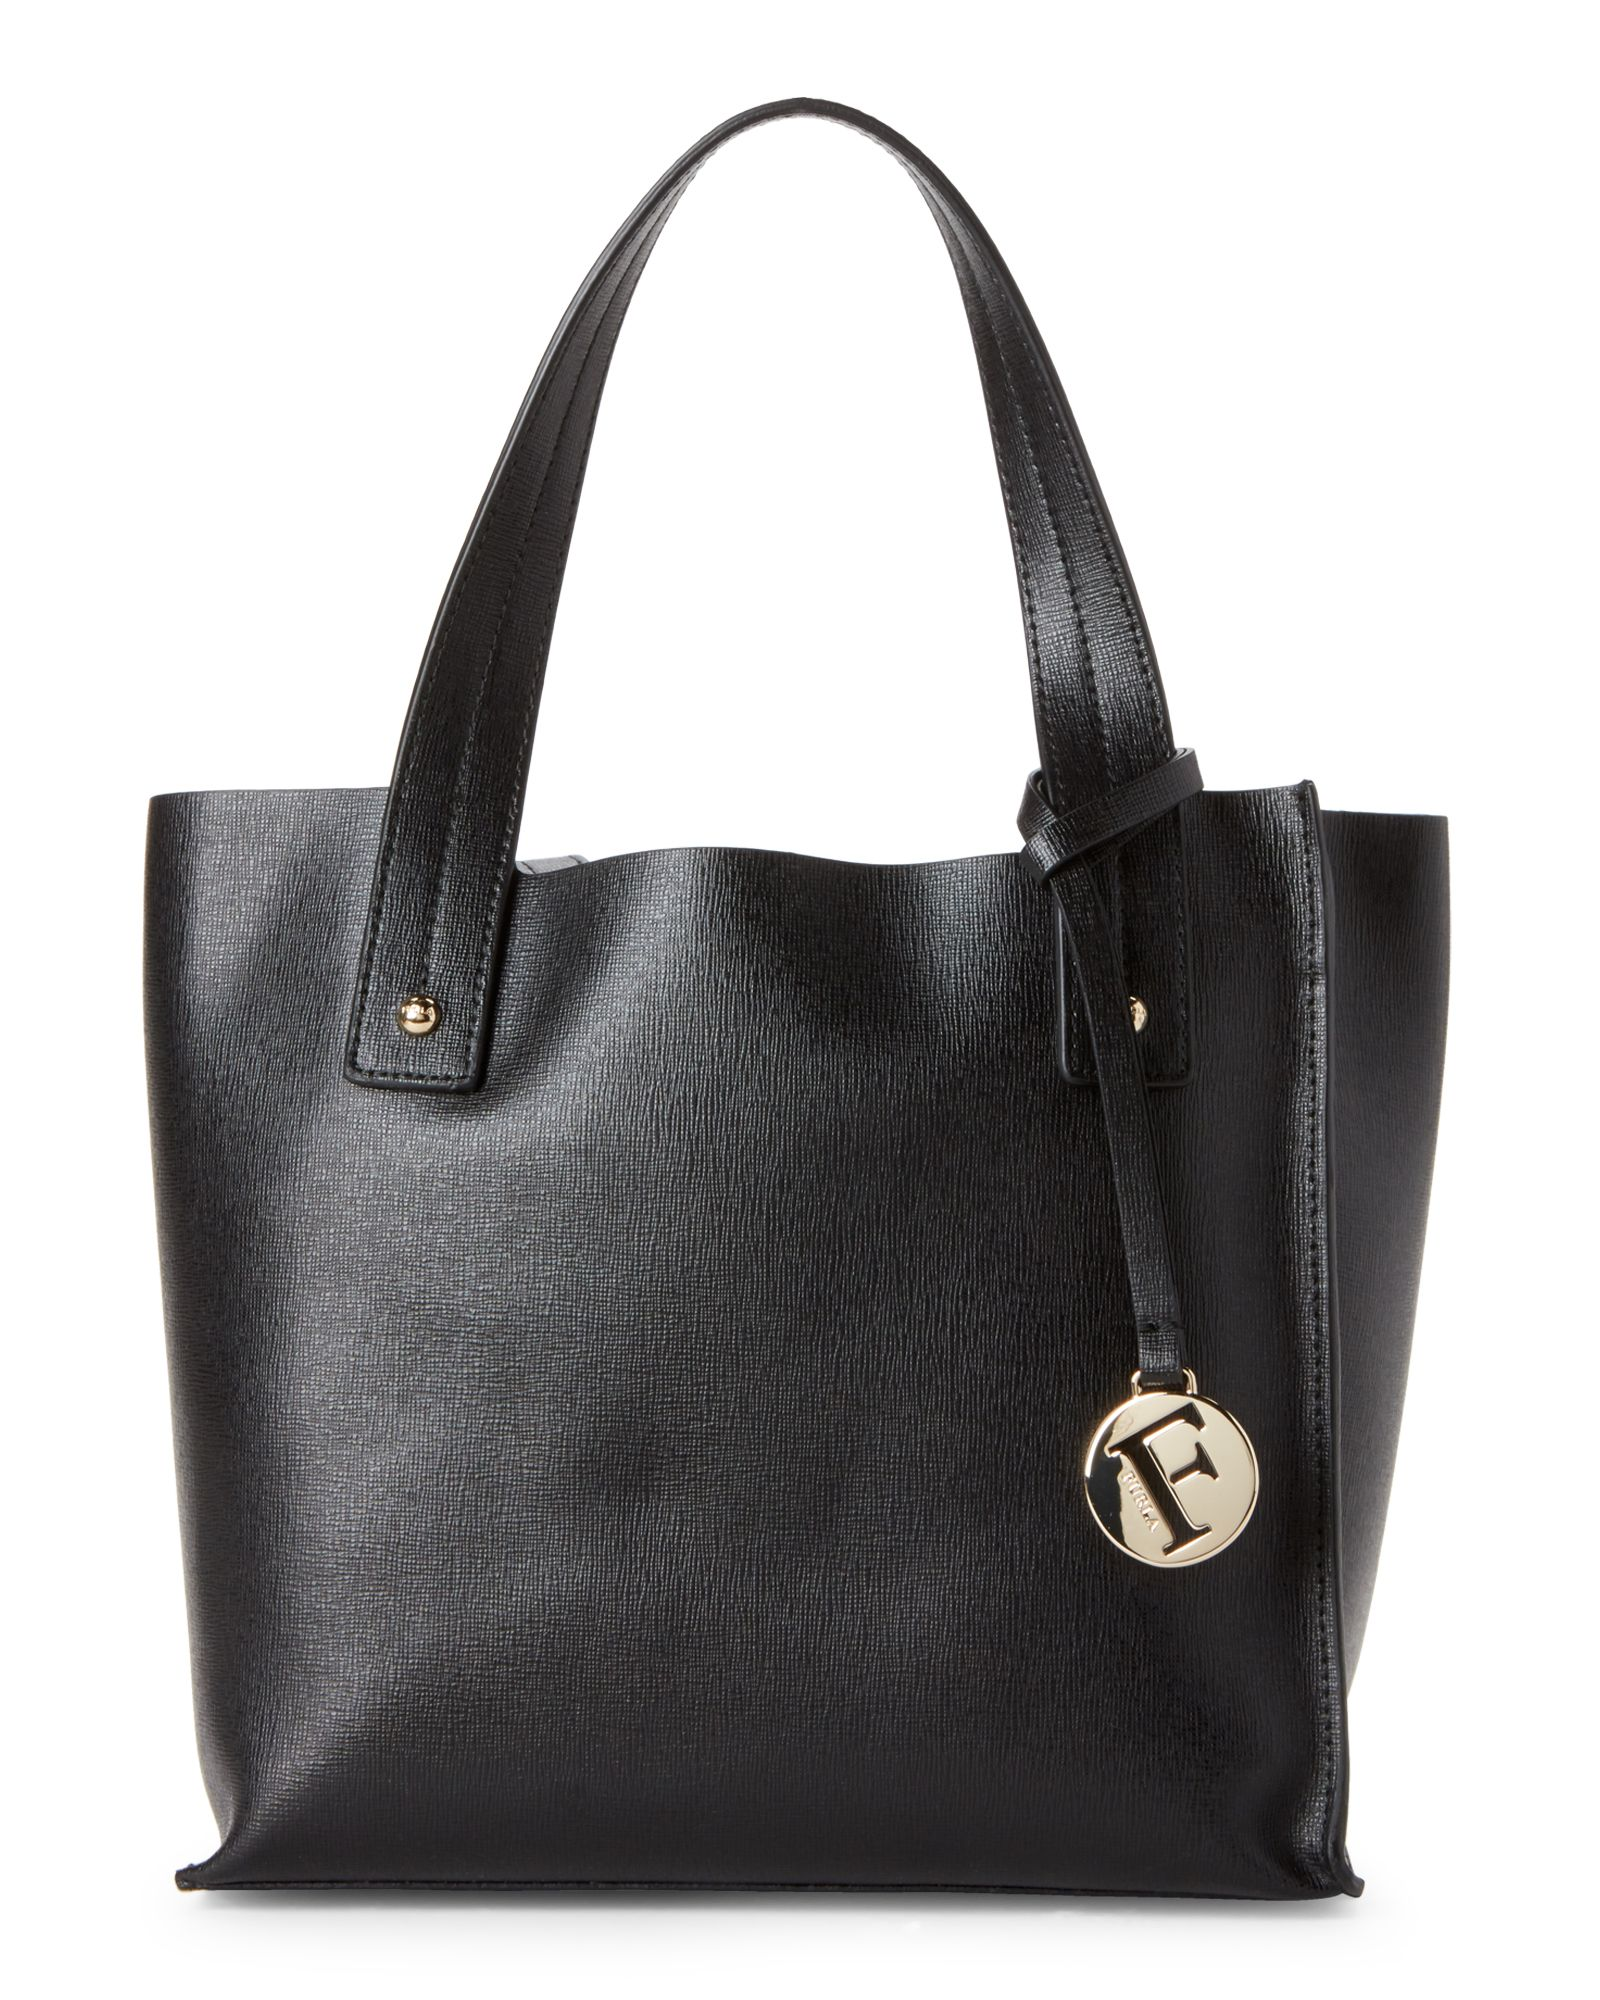 2facef84f0 Onyx Muse Small Leather Tote | *Apparel & Accessories* | Leather ...